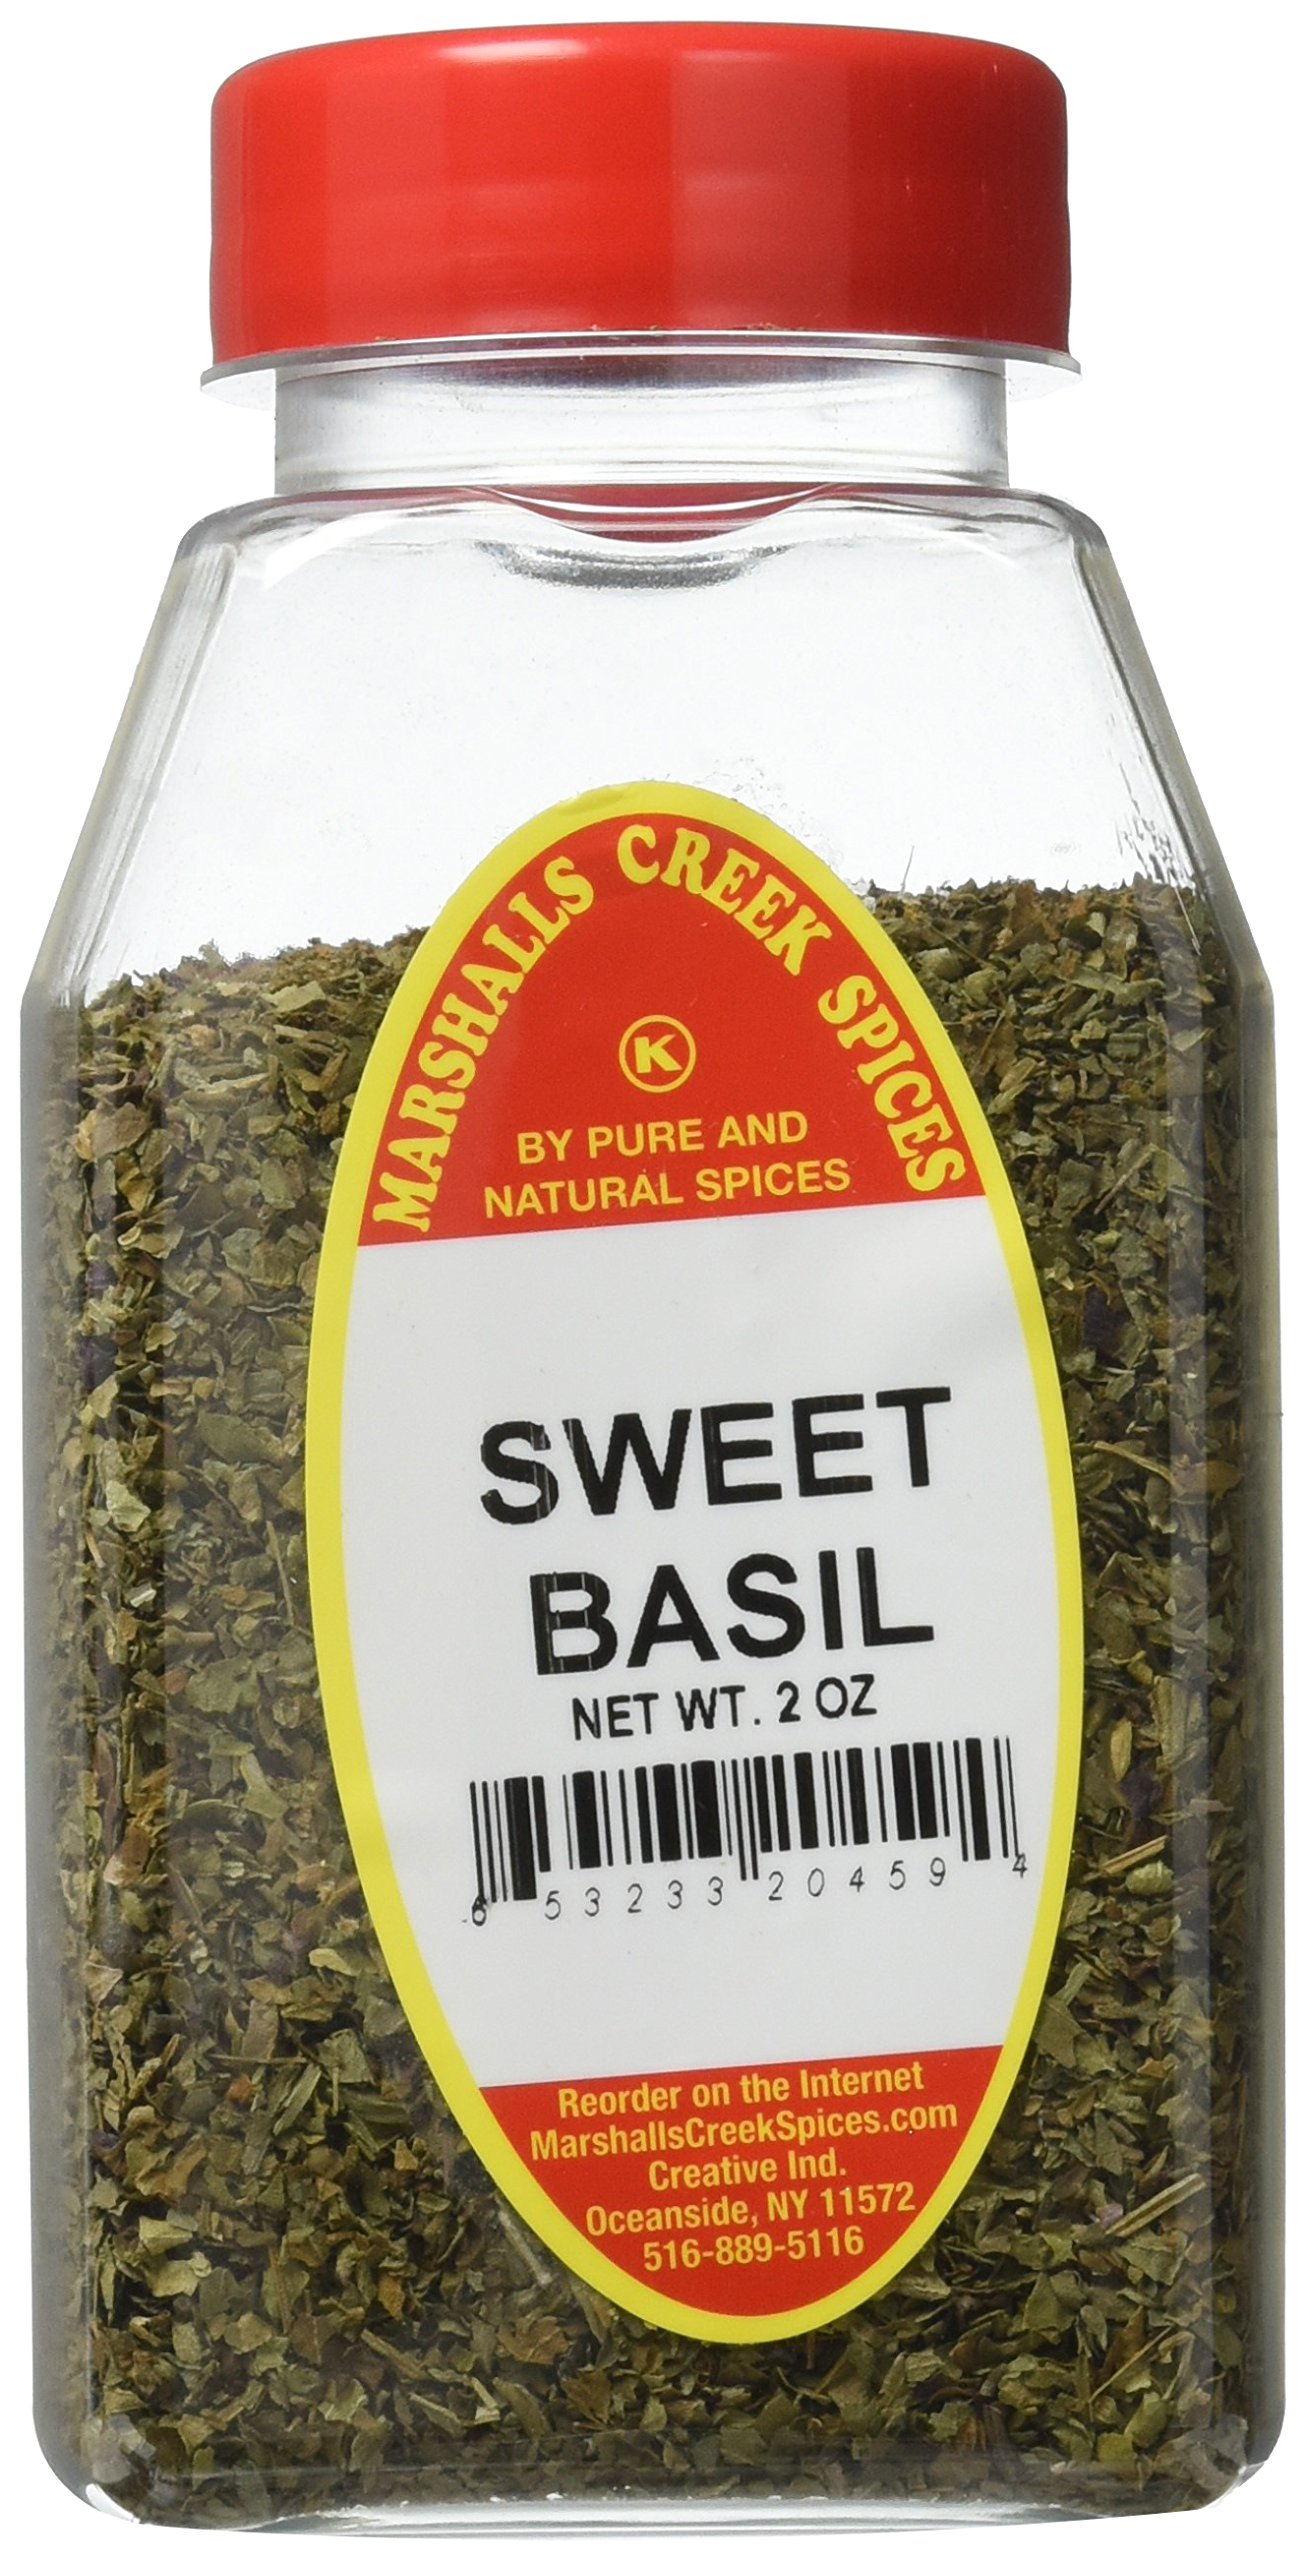 Marshalls Creek Kosher Spices BASIL SWEET, SWEET BASIL 2 oz